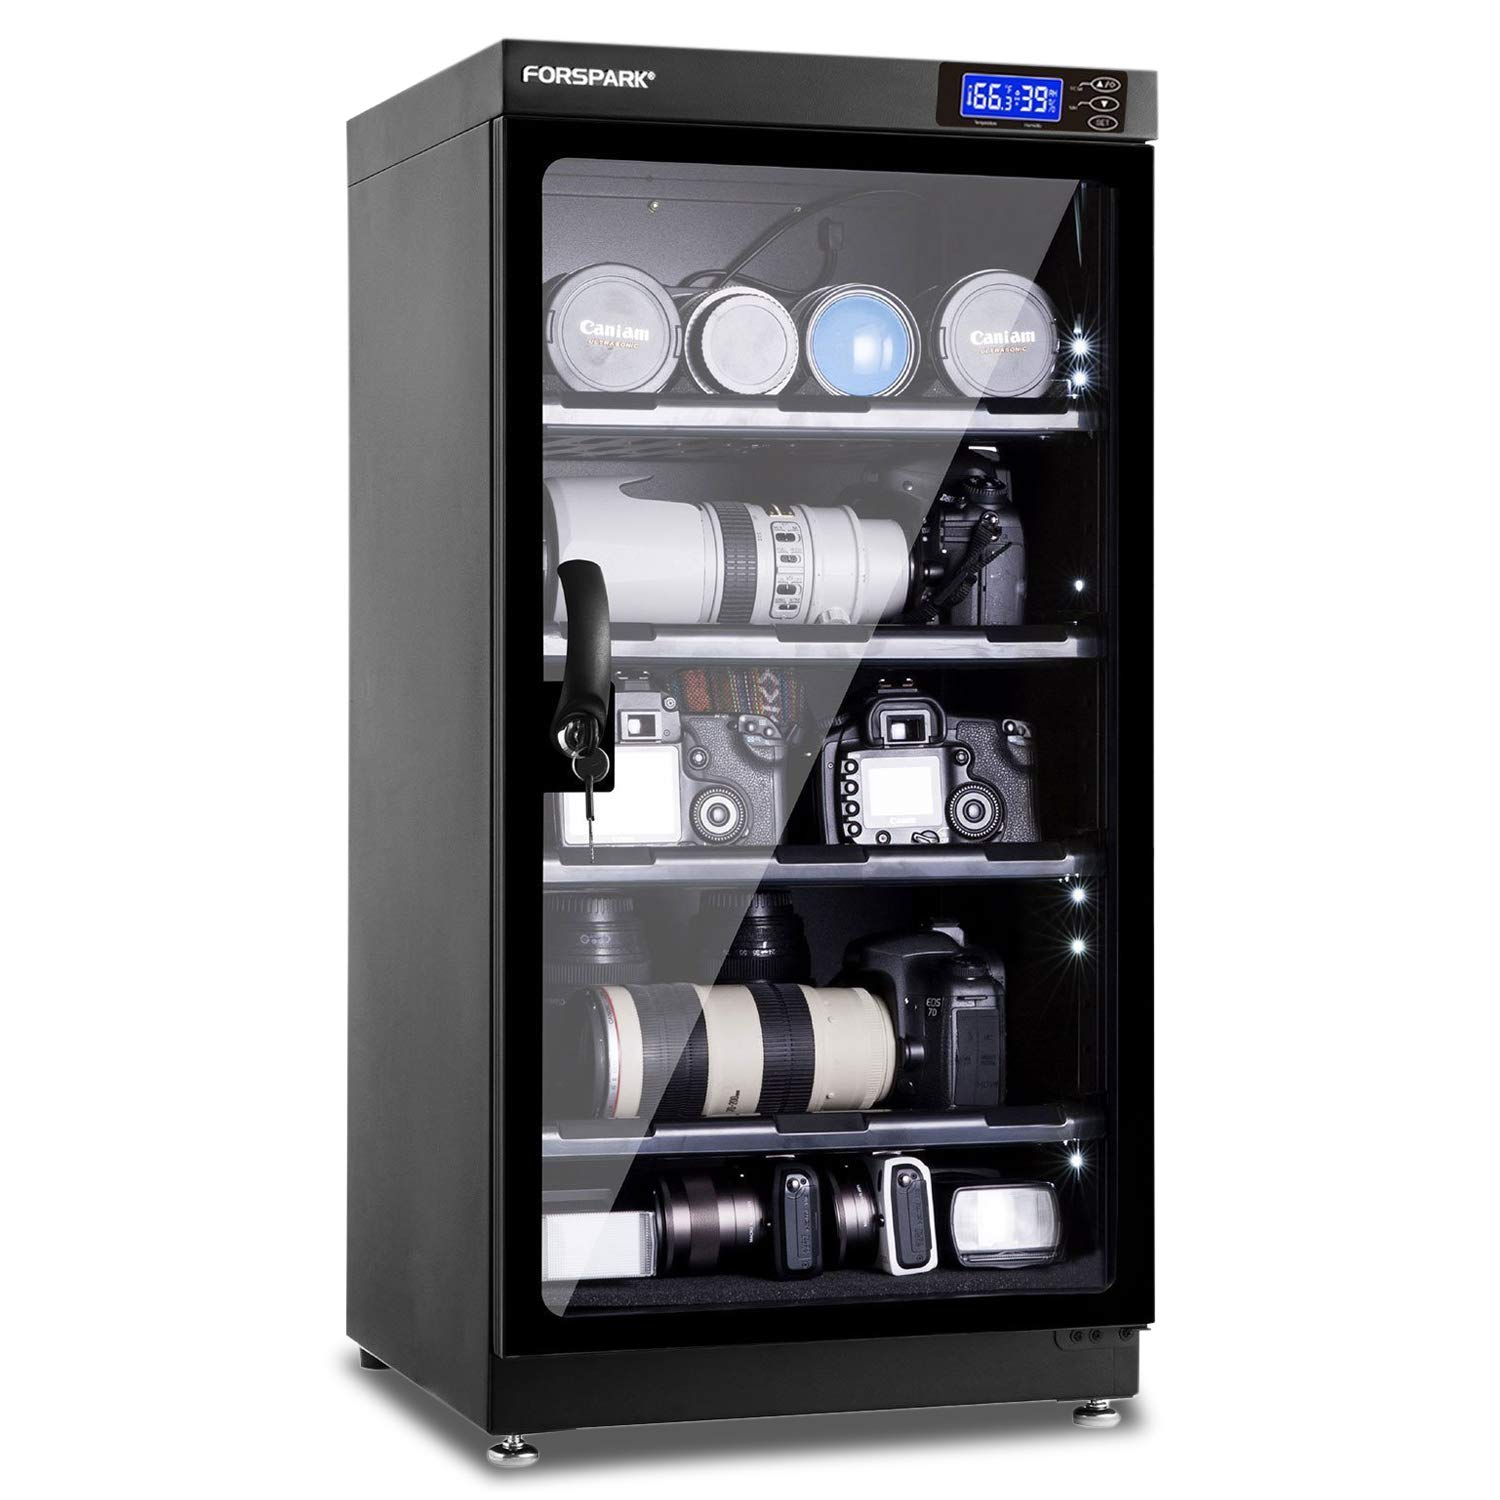 FORSPARK Camera Dehumidifying Dry Cabinet 8W 100L - Noiseless and Energy Saving - for Camera Lens and Electronic Equipment Storage by FORSPARK